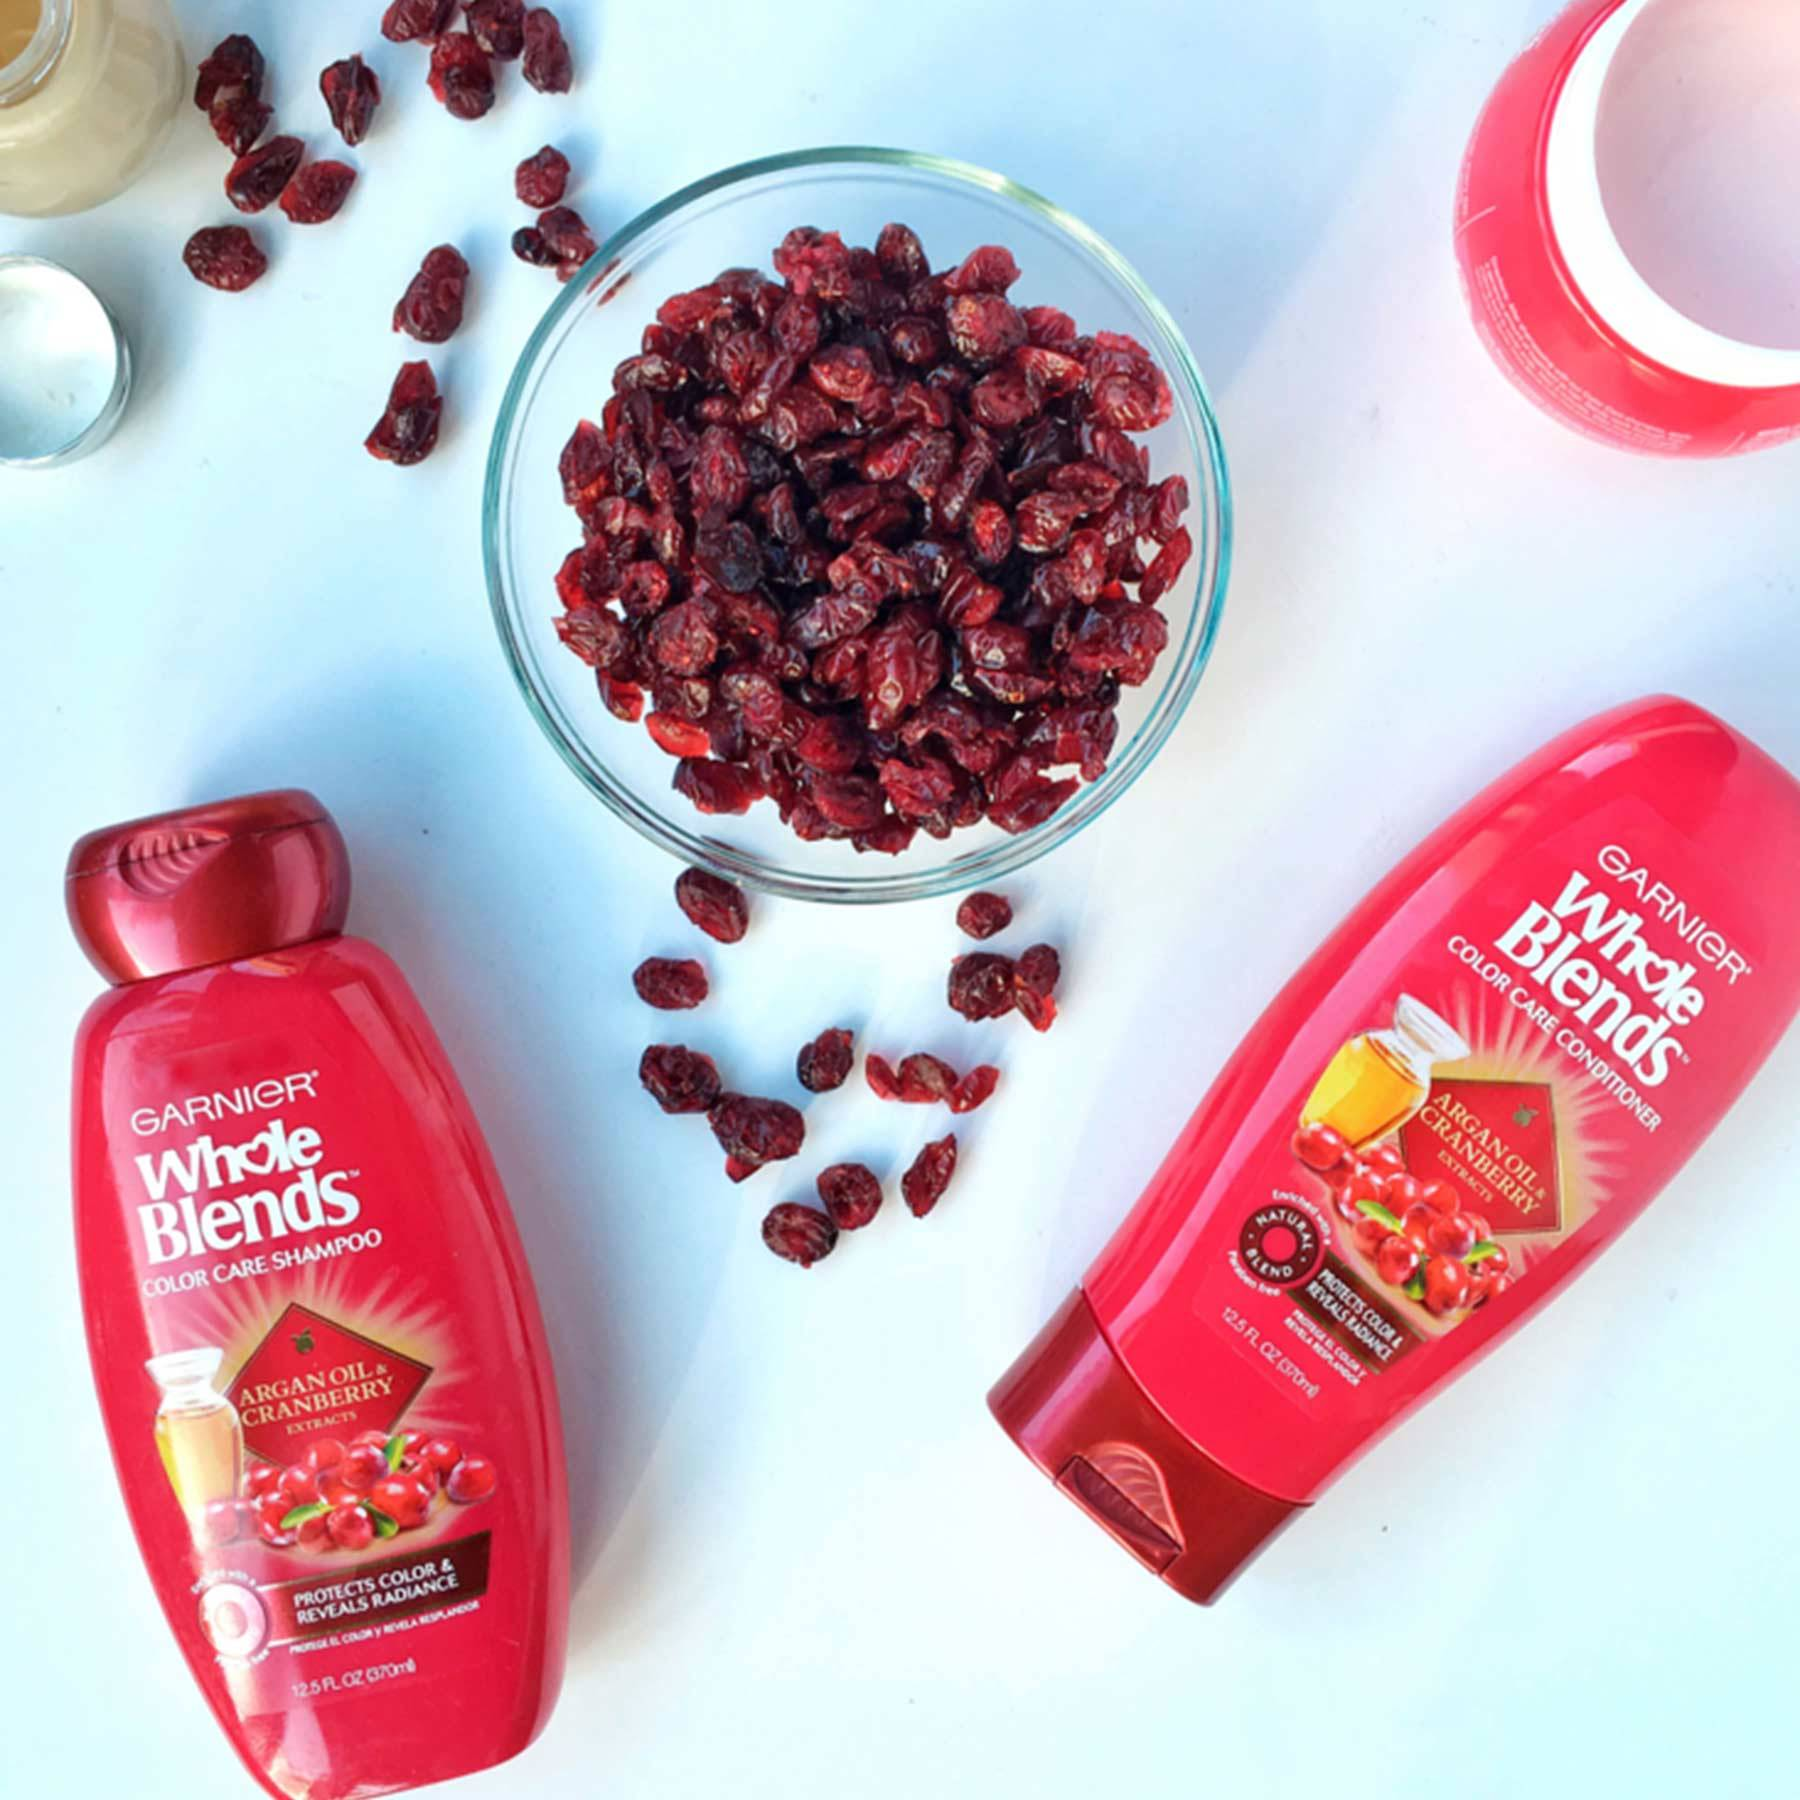 Whole Blends Color Care Shampoo with Argan Oil and Cranberry and Color Care Conditioner with Argan Oil and Cranberry on a blue-white background with an open jar of Argan Oil and Cranberry Color Care Mask, open jar of foundation, and a bowl of dried cranberries with some spilled out.